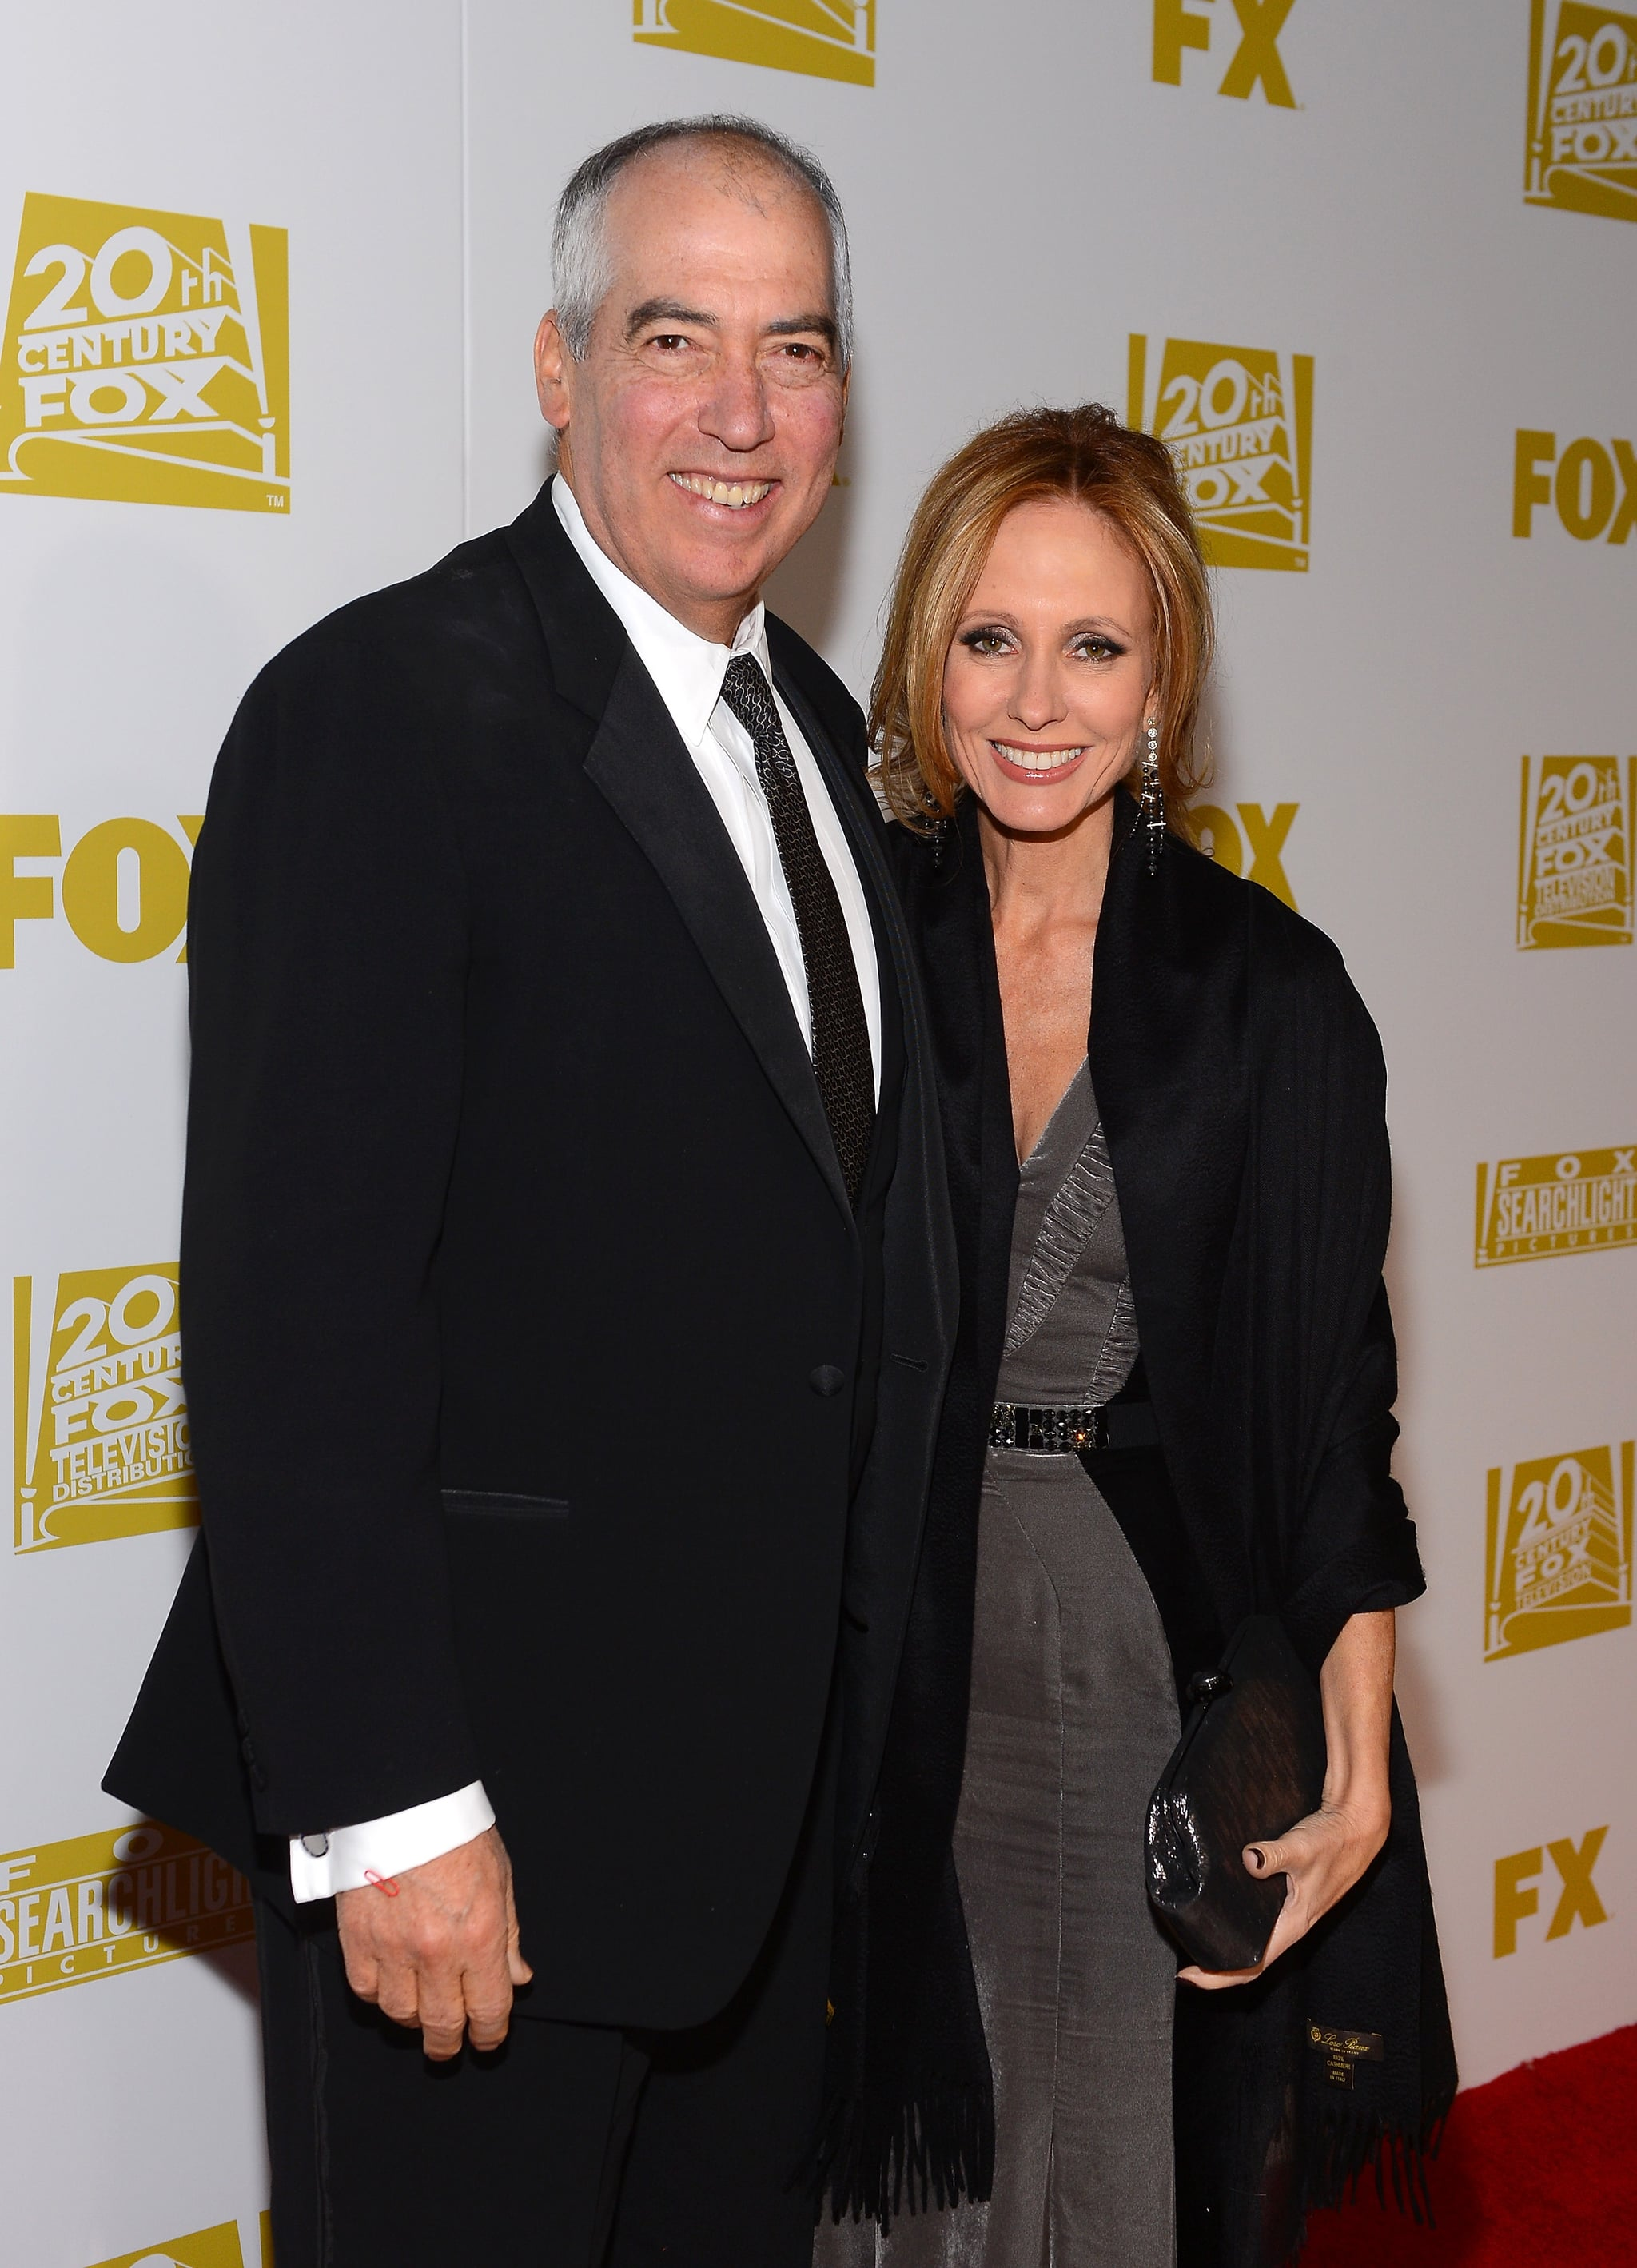 Gary Newman and Dana Walden celebrated the Golden Globes at the Fox celebration.